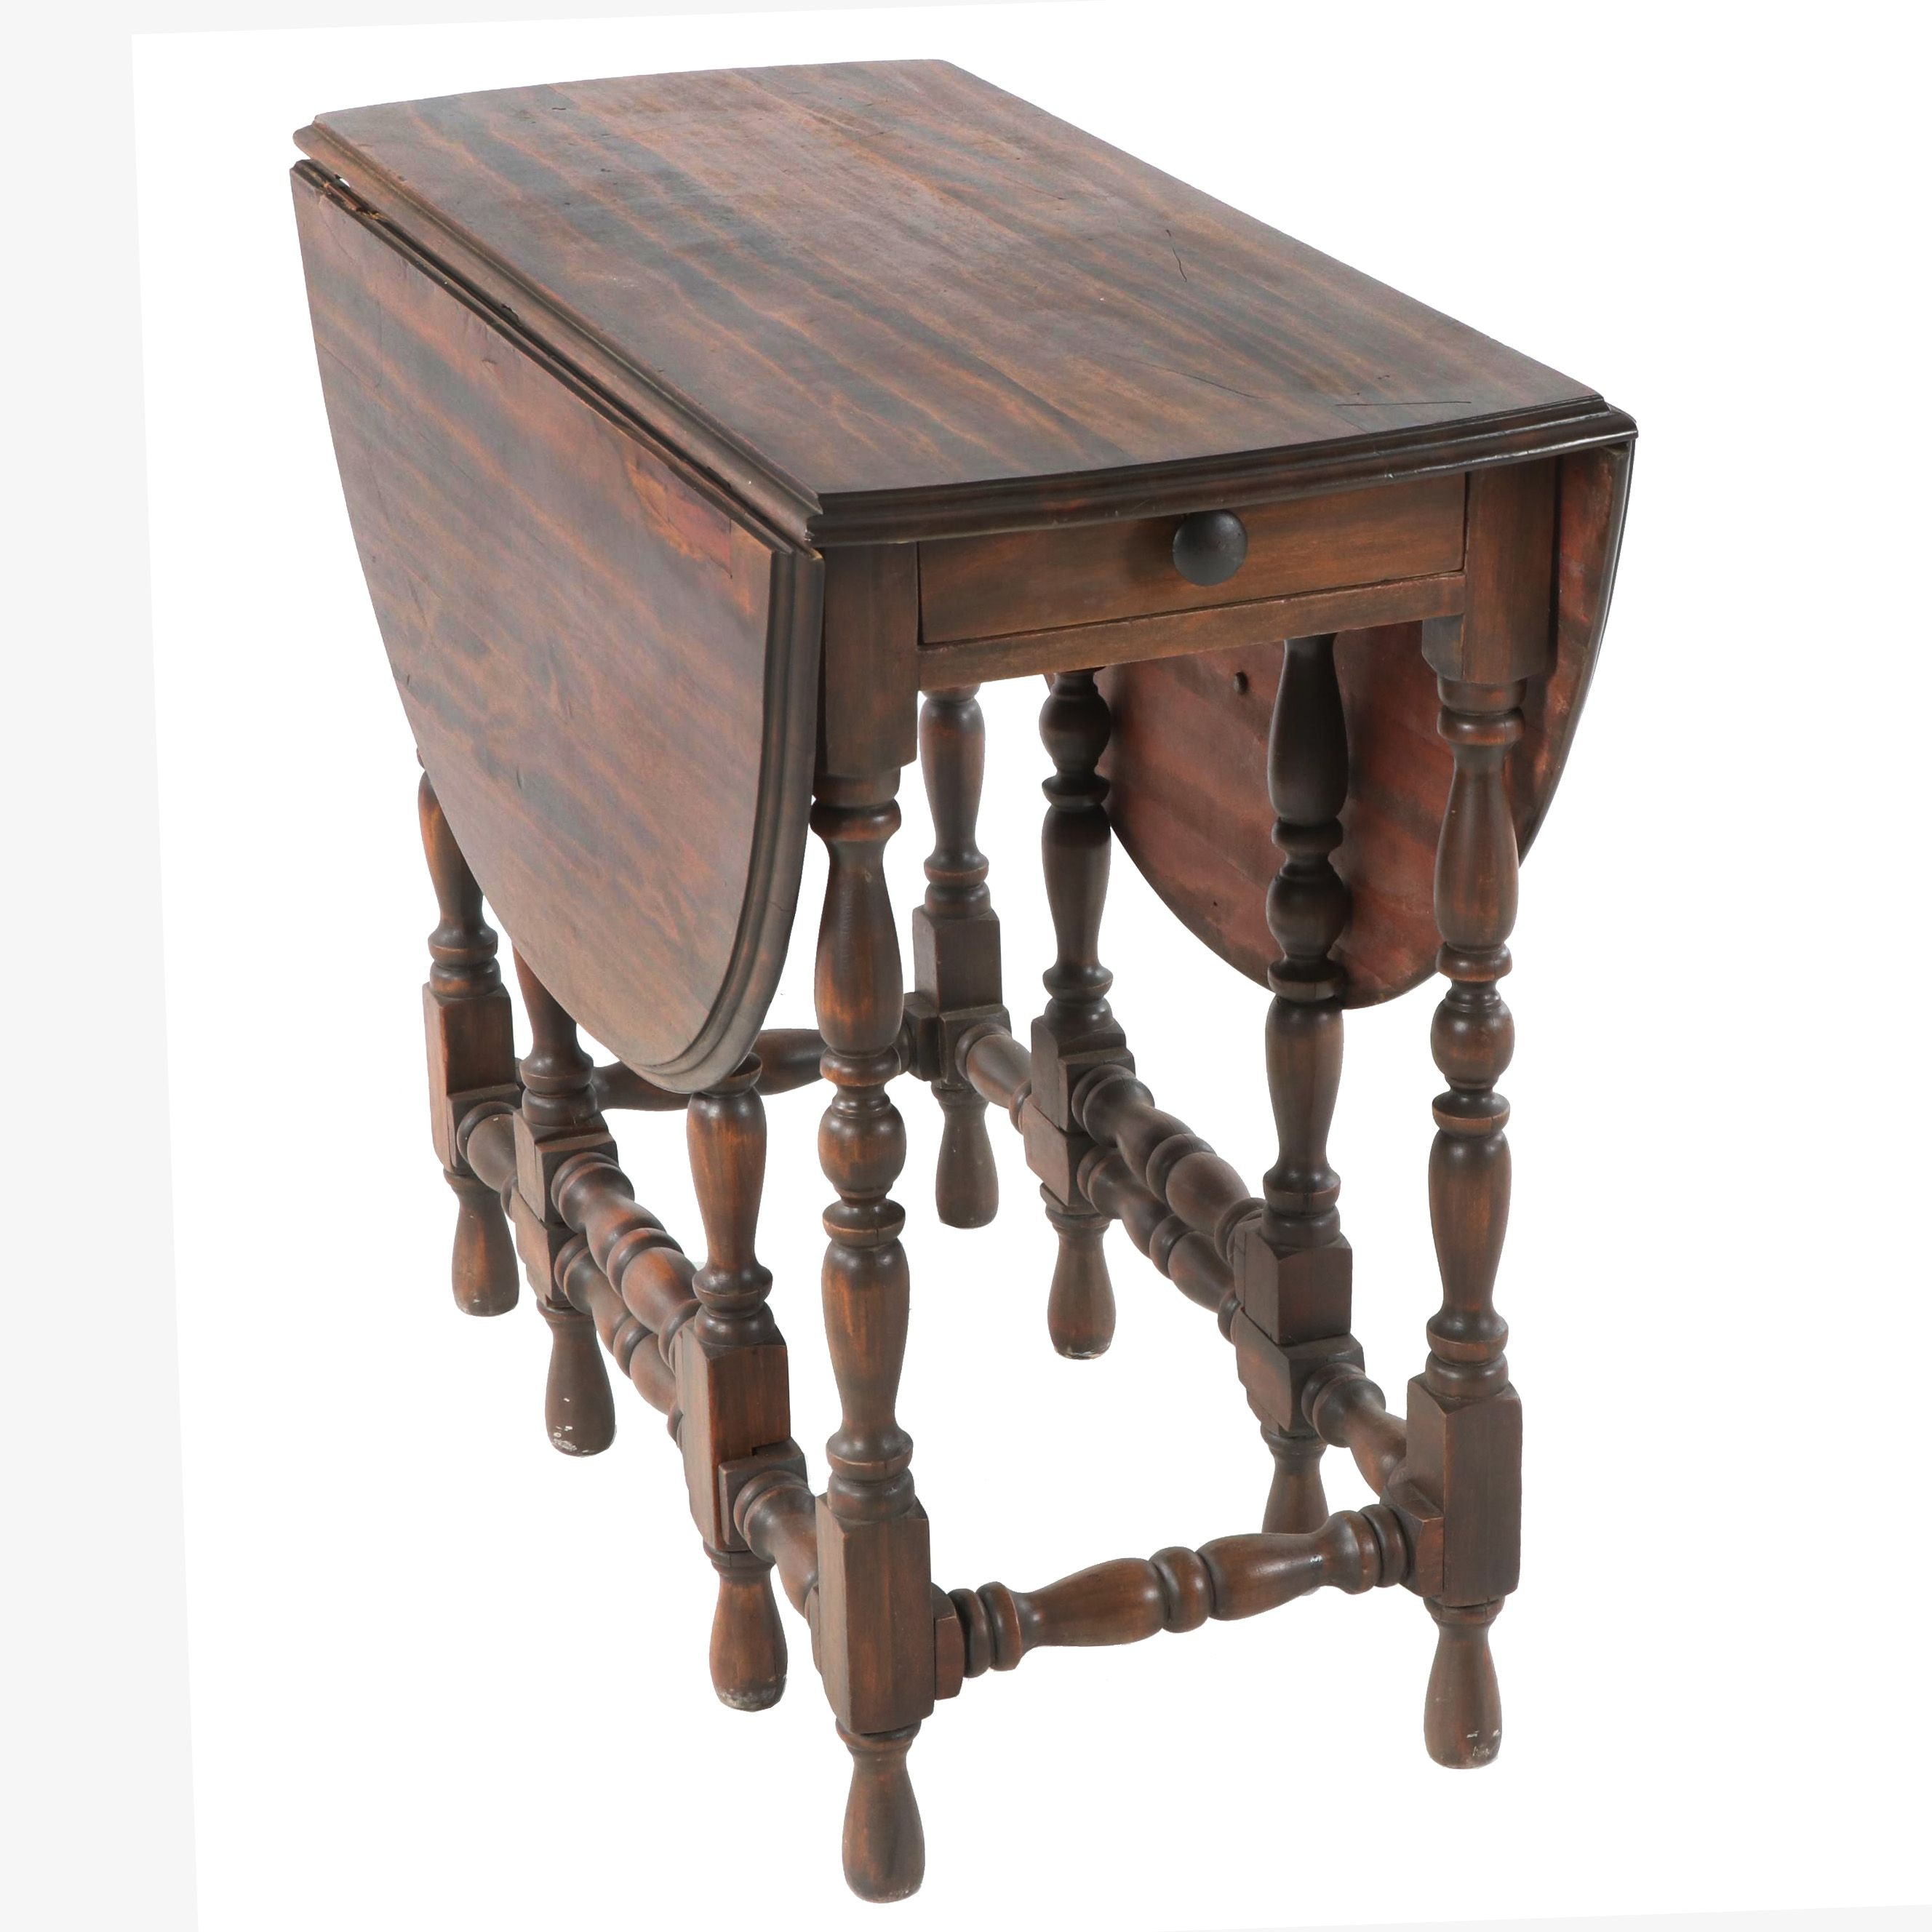 William and Mary Style Wooden Pembroke Table, 20th Century